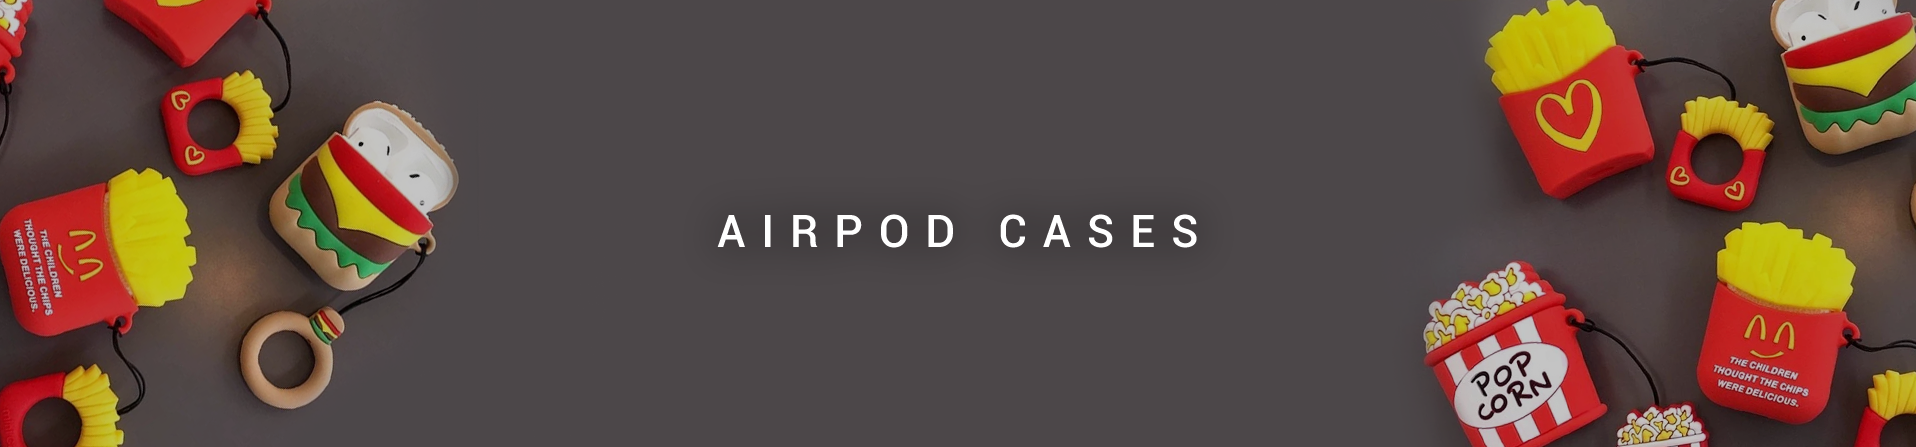 - Airpod Cases -